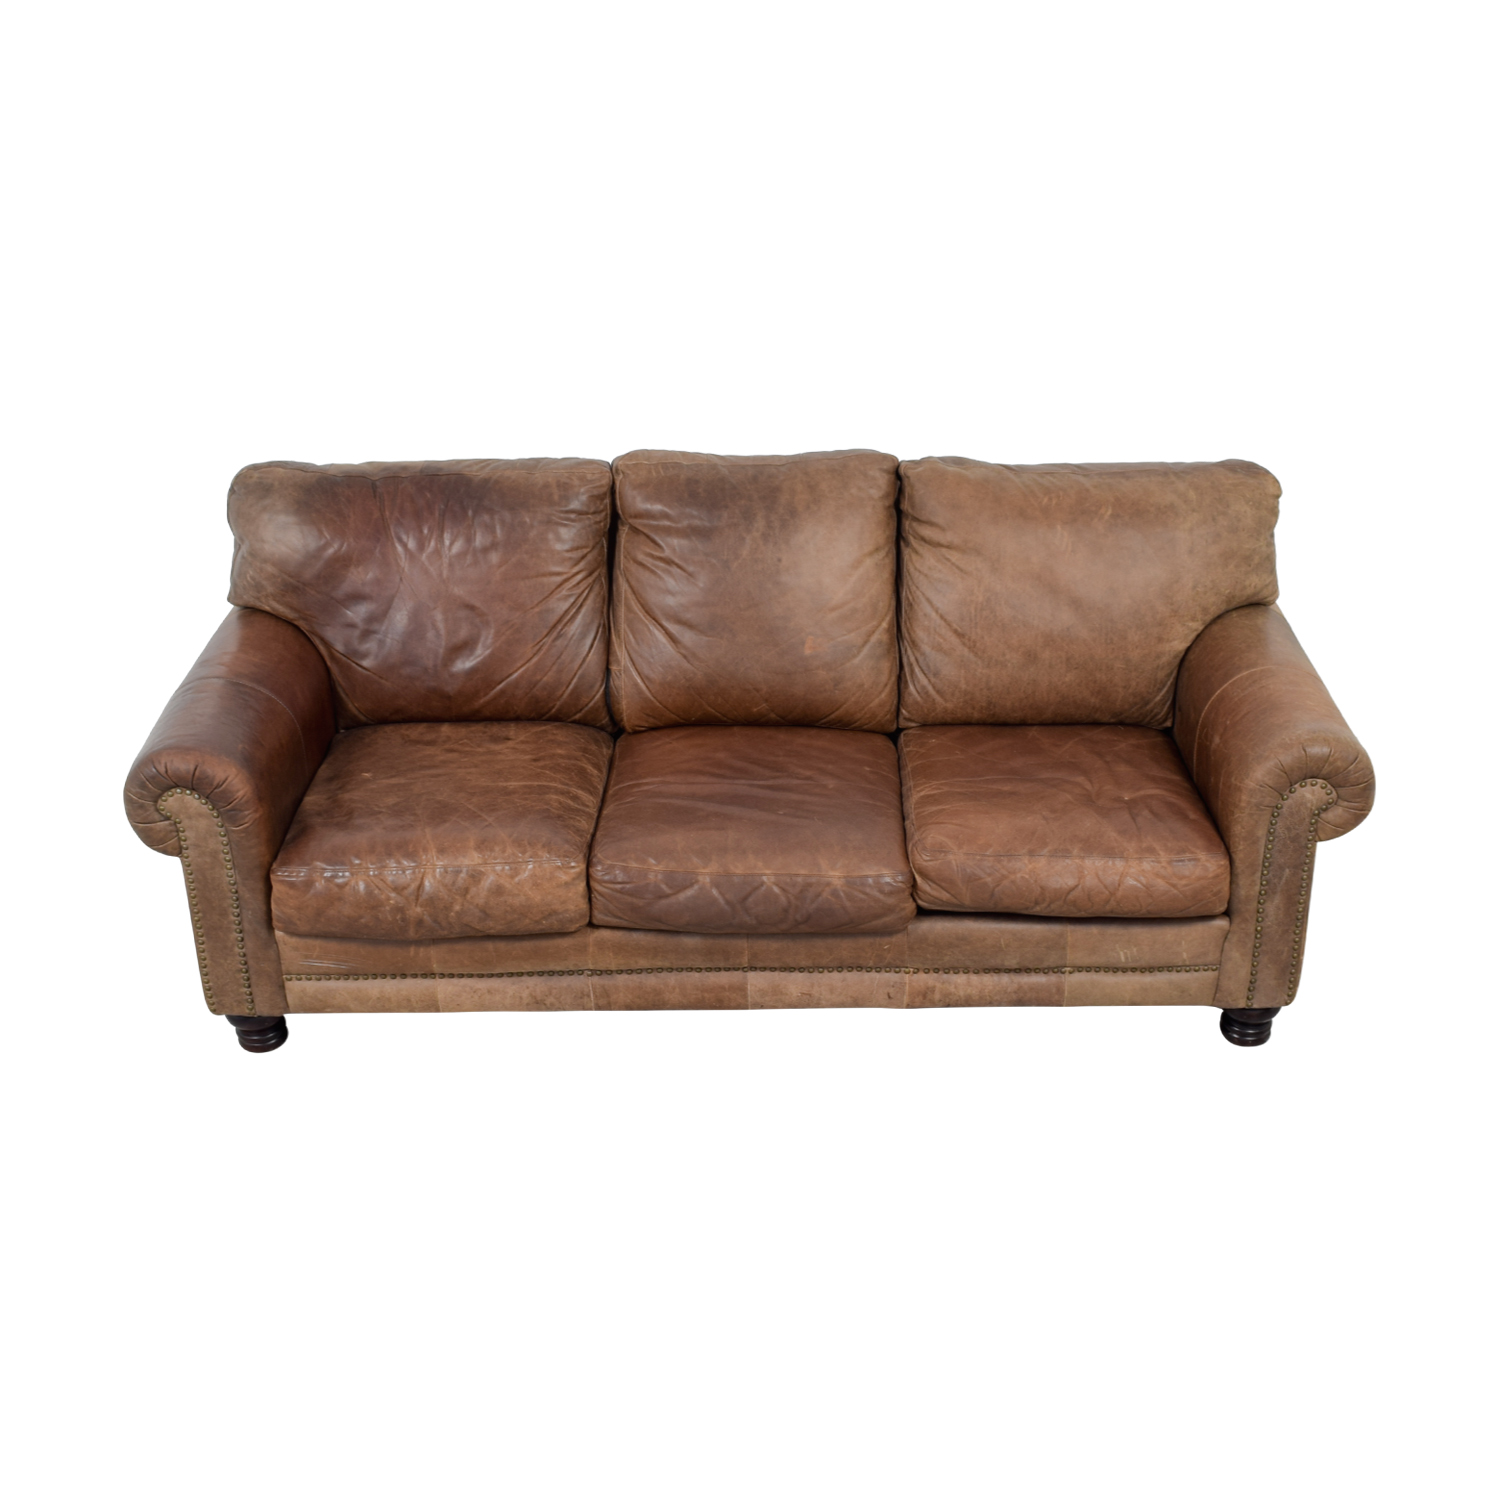 Three Cushion Brown Leather Couch